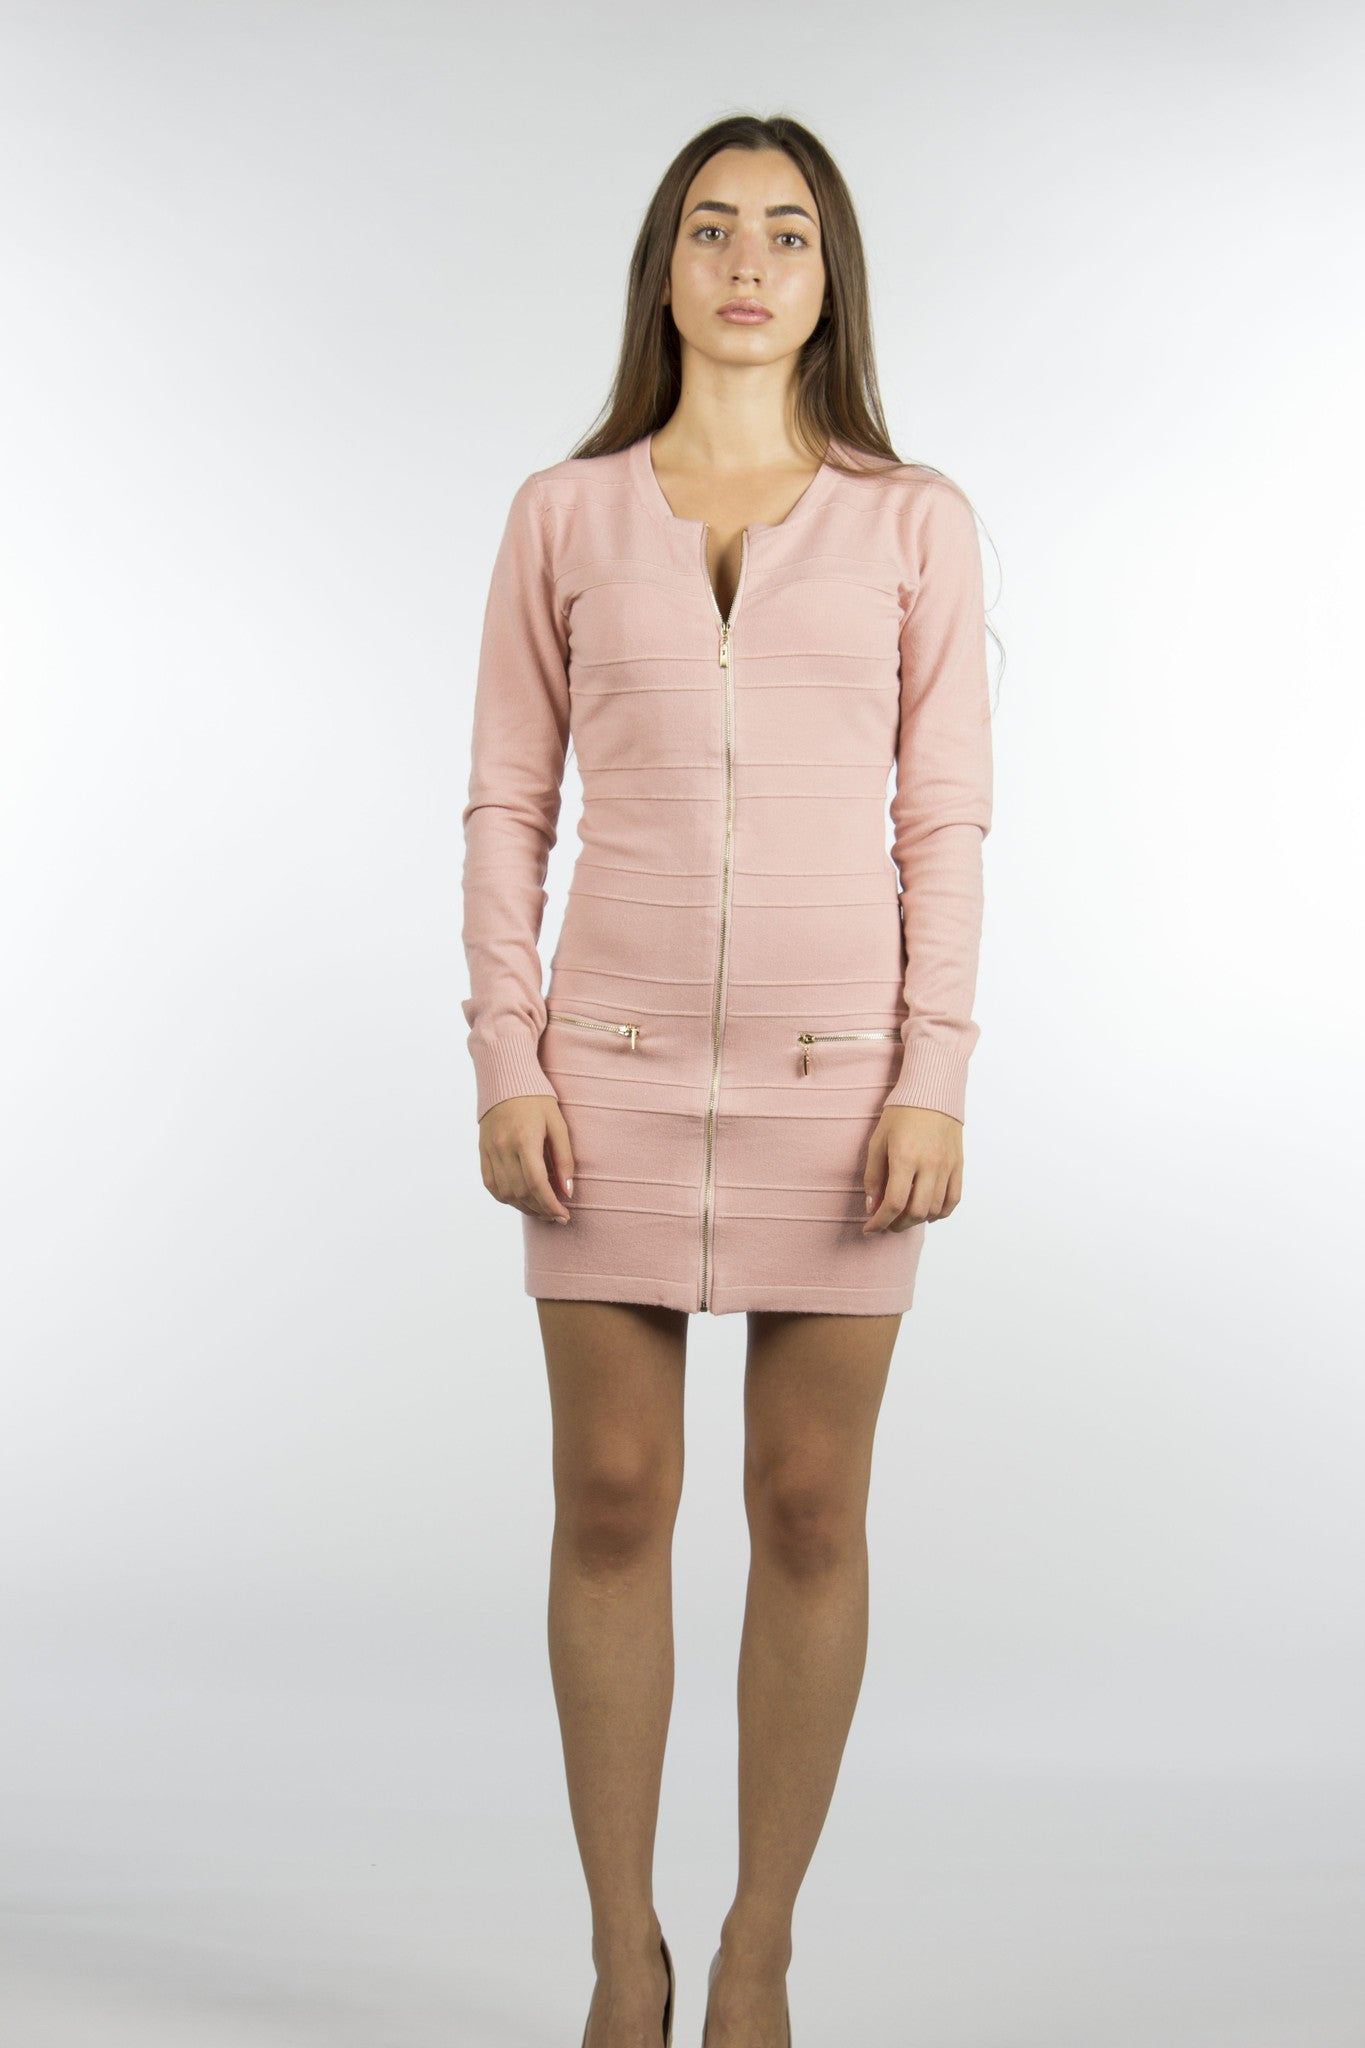 Pink bodycon sweater dress with gold zippers